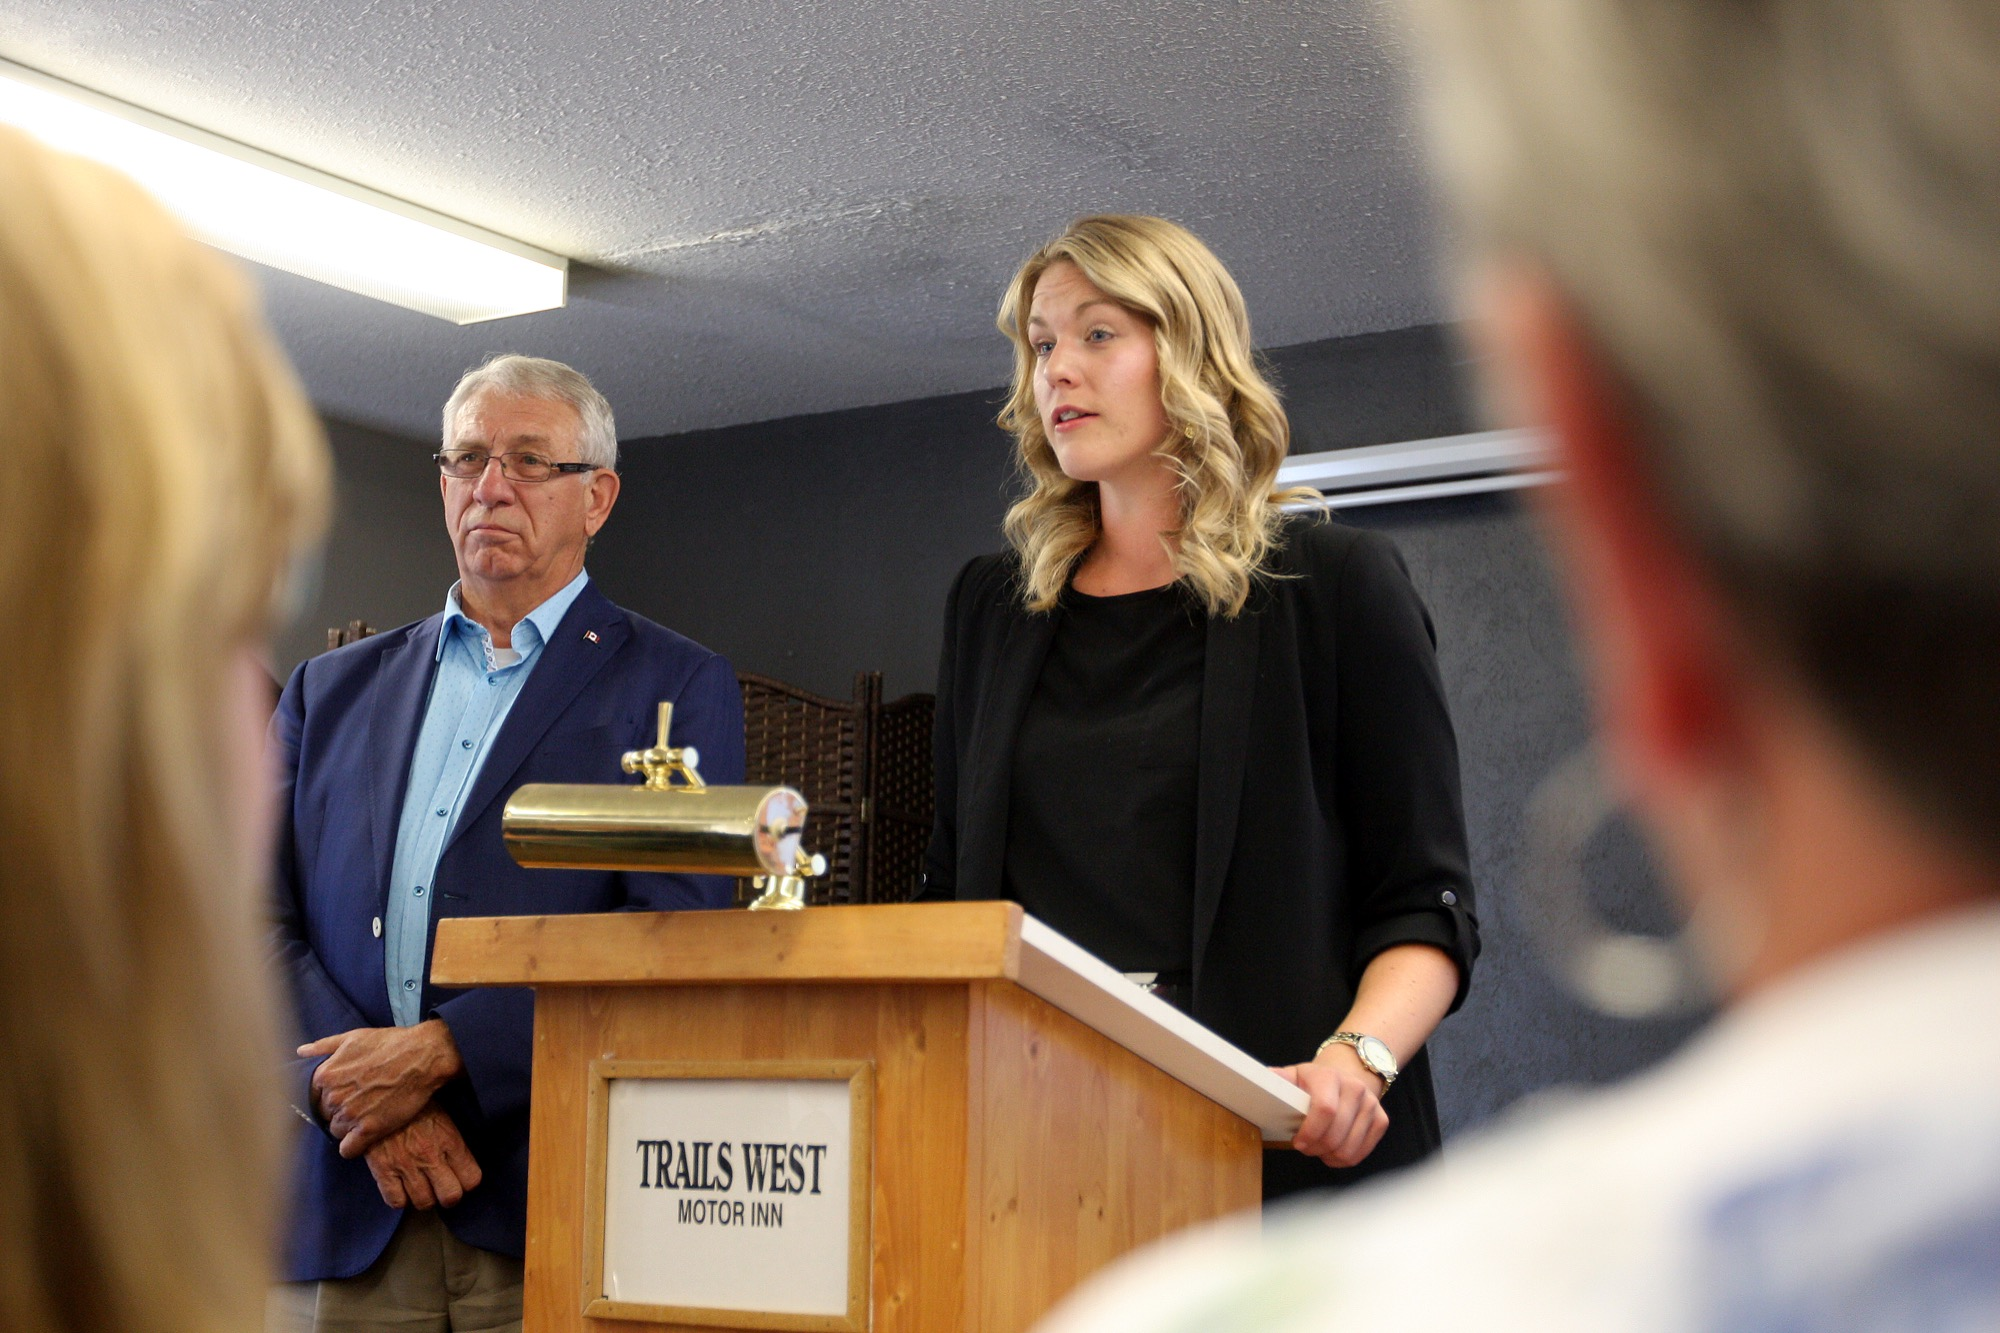 Brandon-Souris Conservative MP Larry Maguire and Conservative health critic Rachael Harder address the crowd during a roundtable discussion about the opioid crisis and legalization of marijuana at the Trails West Inn on Friday.